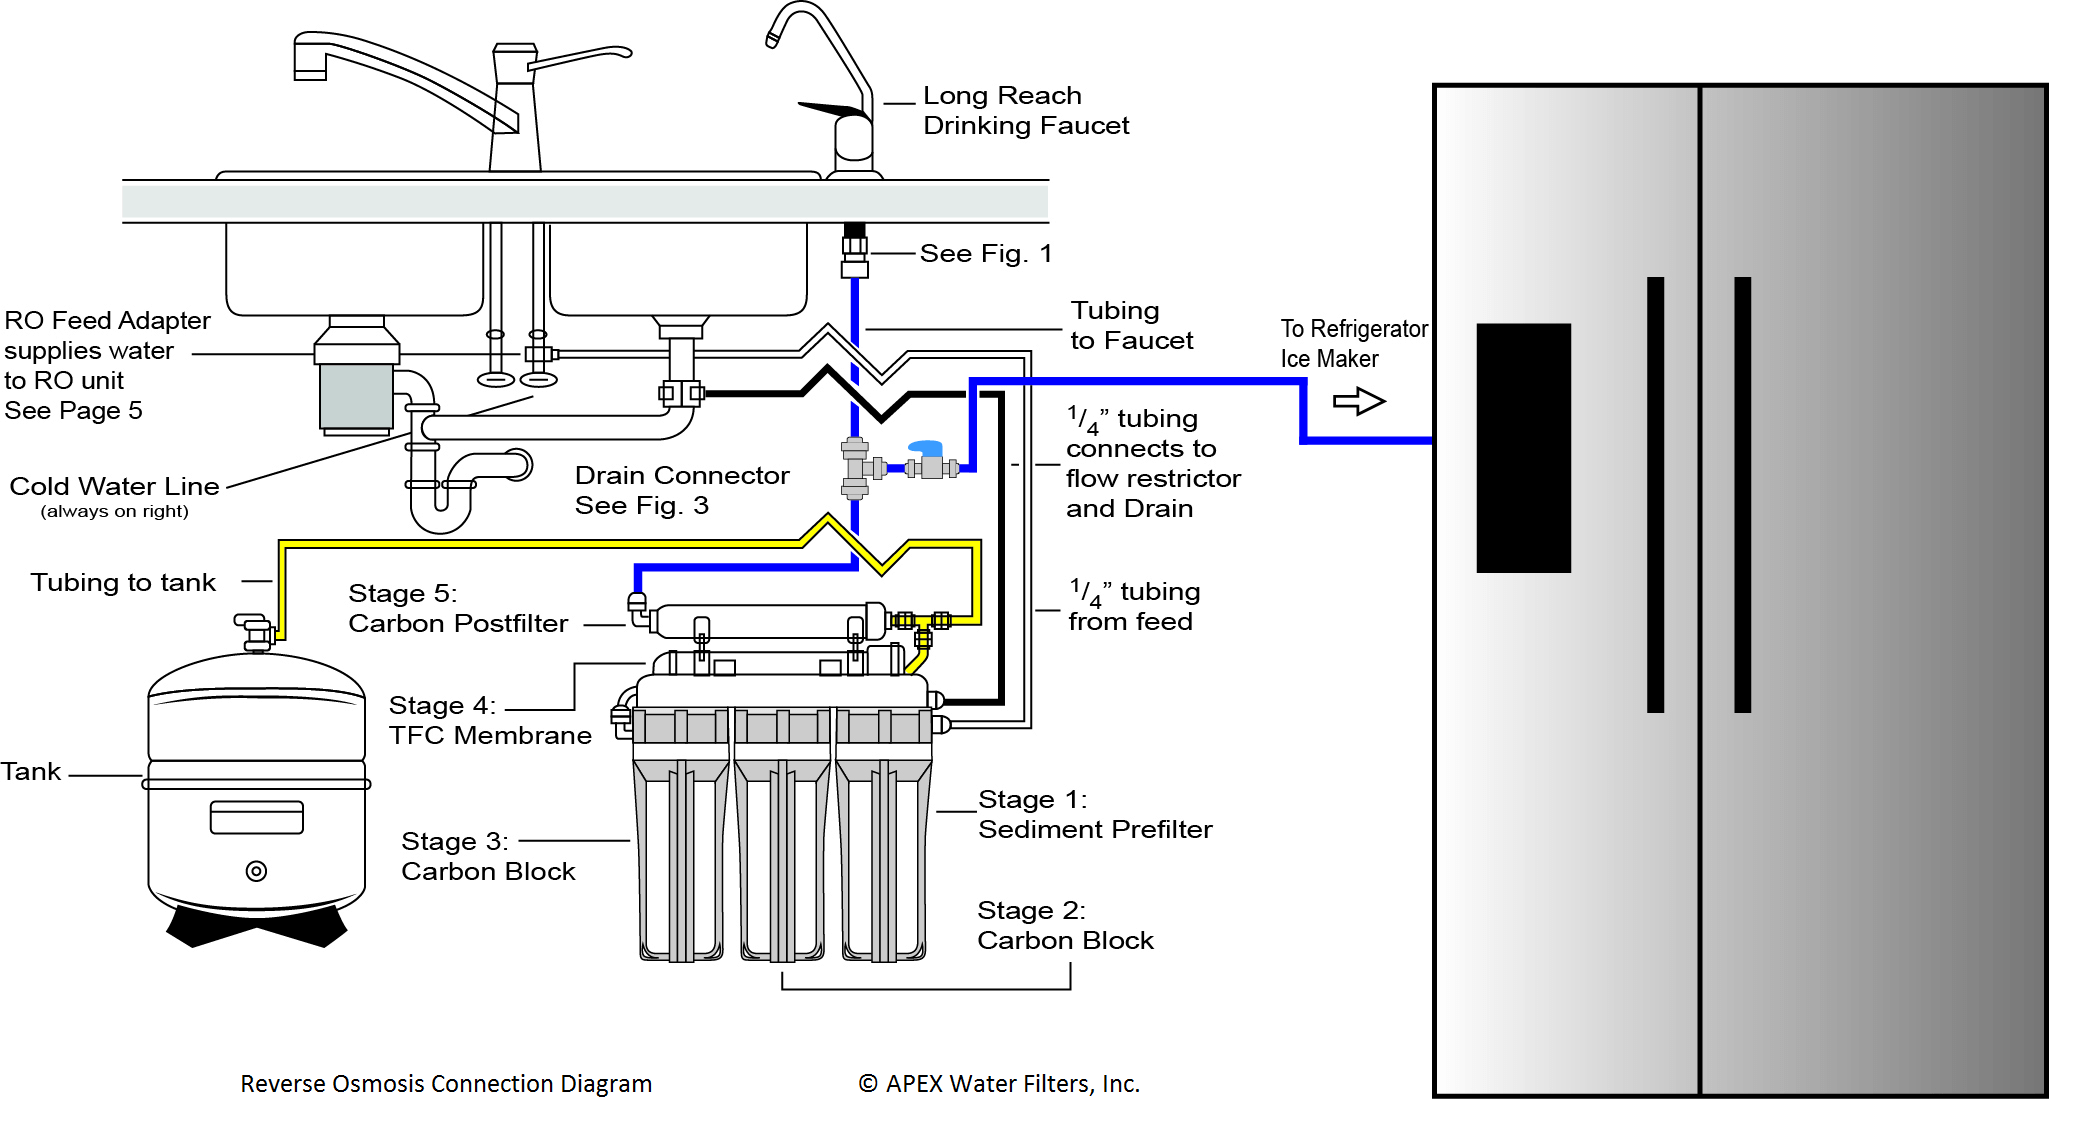 Hook up reverse osmosis to refrigerator